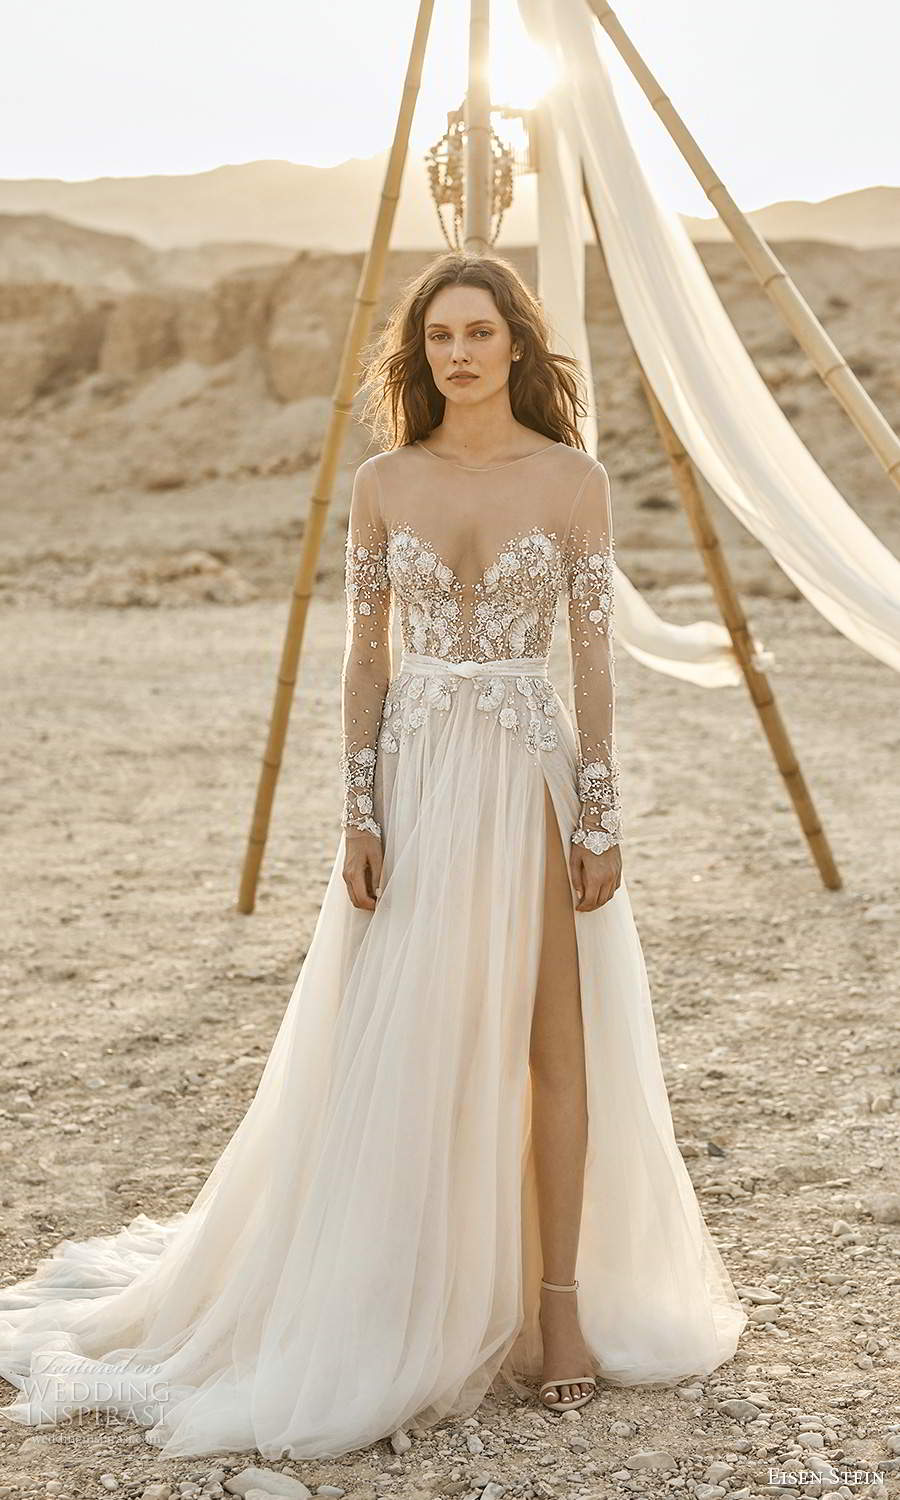 eisen stein fall 2021 bridal illusion long sleeves sheer sweetheart neckline embellished bodice a line ball gown wedding dress slit skirt chapel train (2) mv